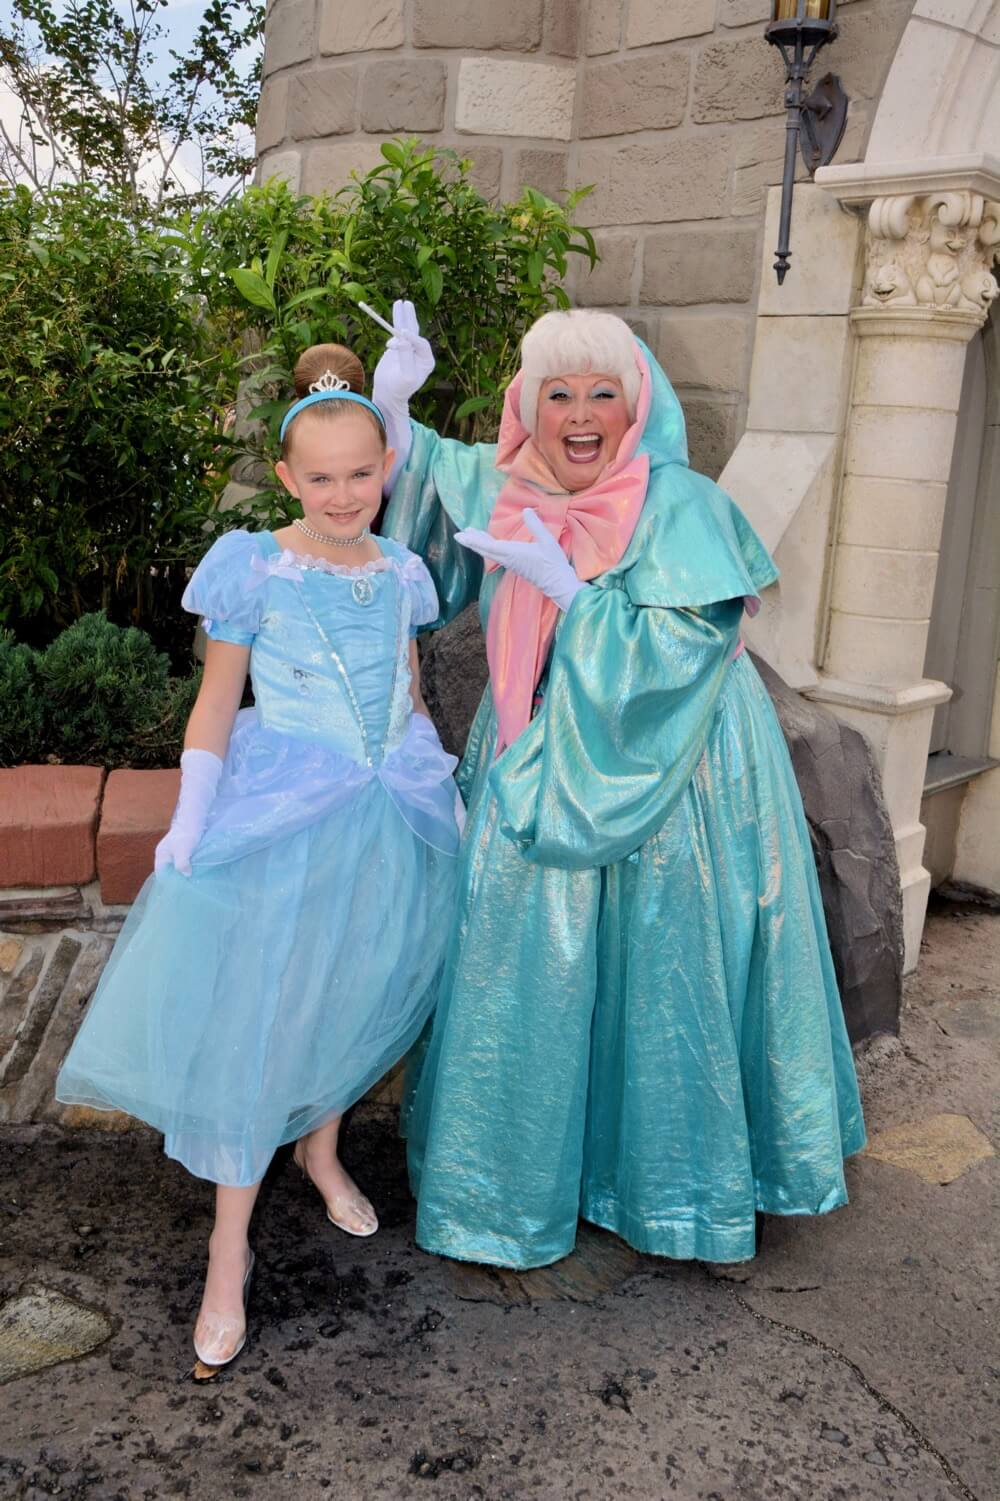 Review: The Royal Treatment at the Bibbidi Bobbidi Boutique